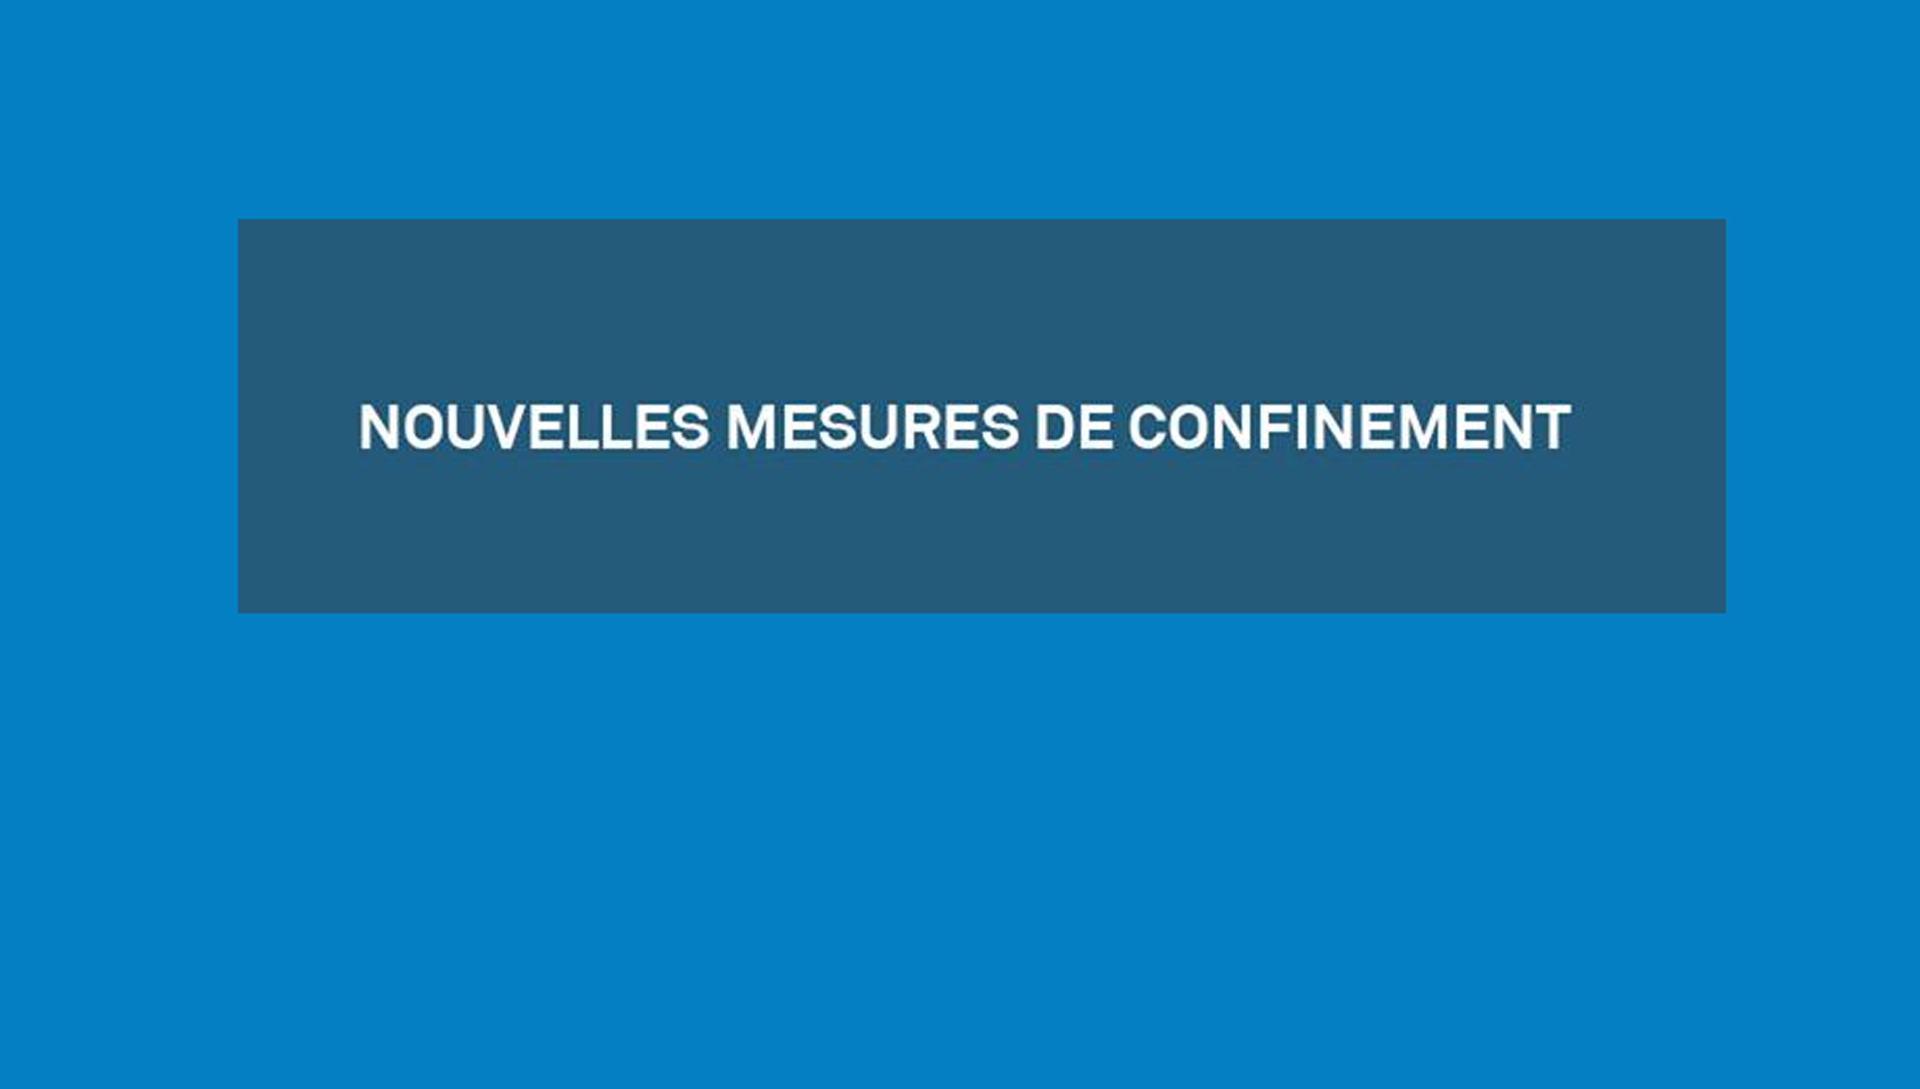 Nlles-mesures-confinement-